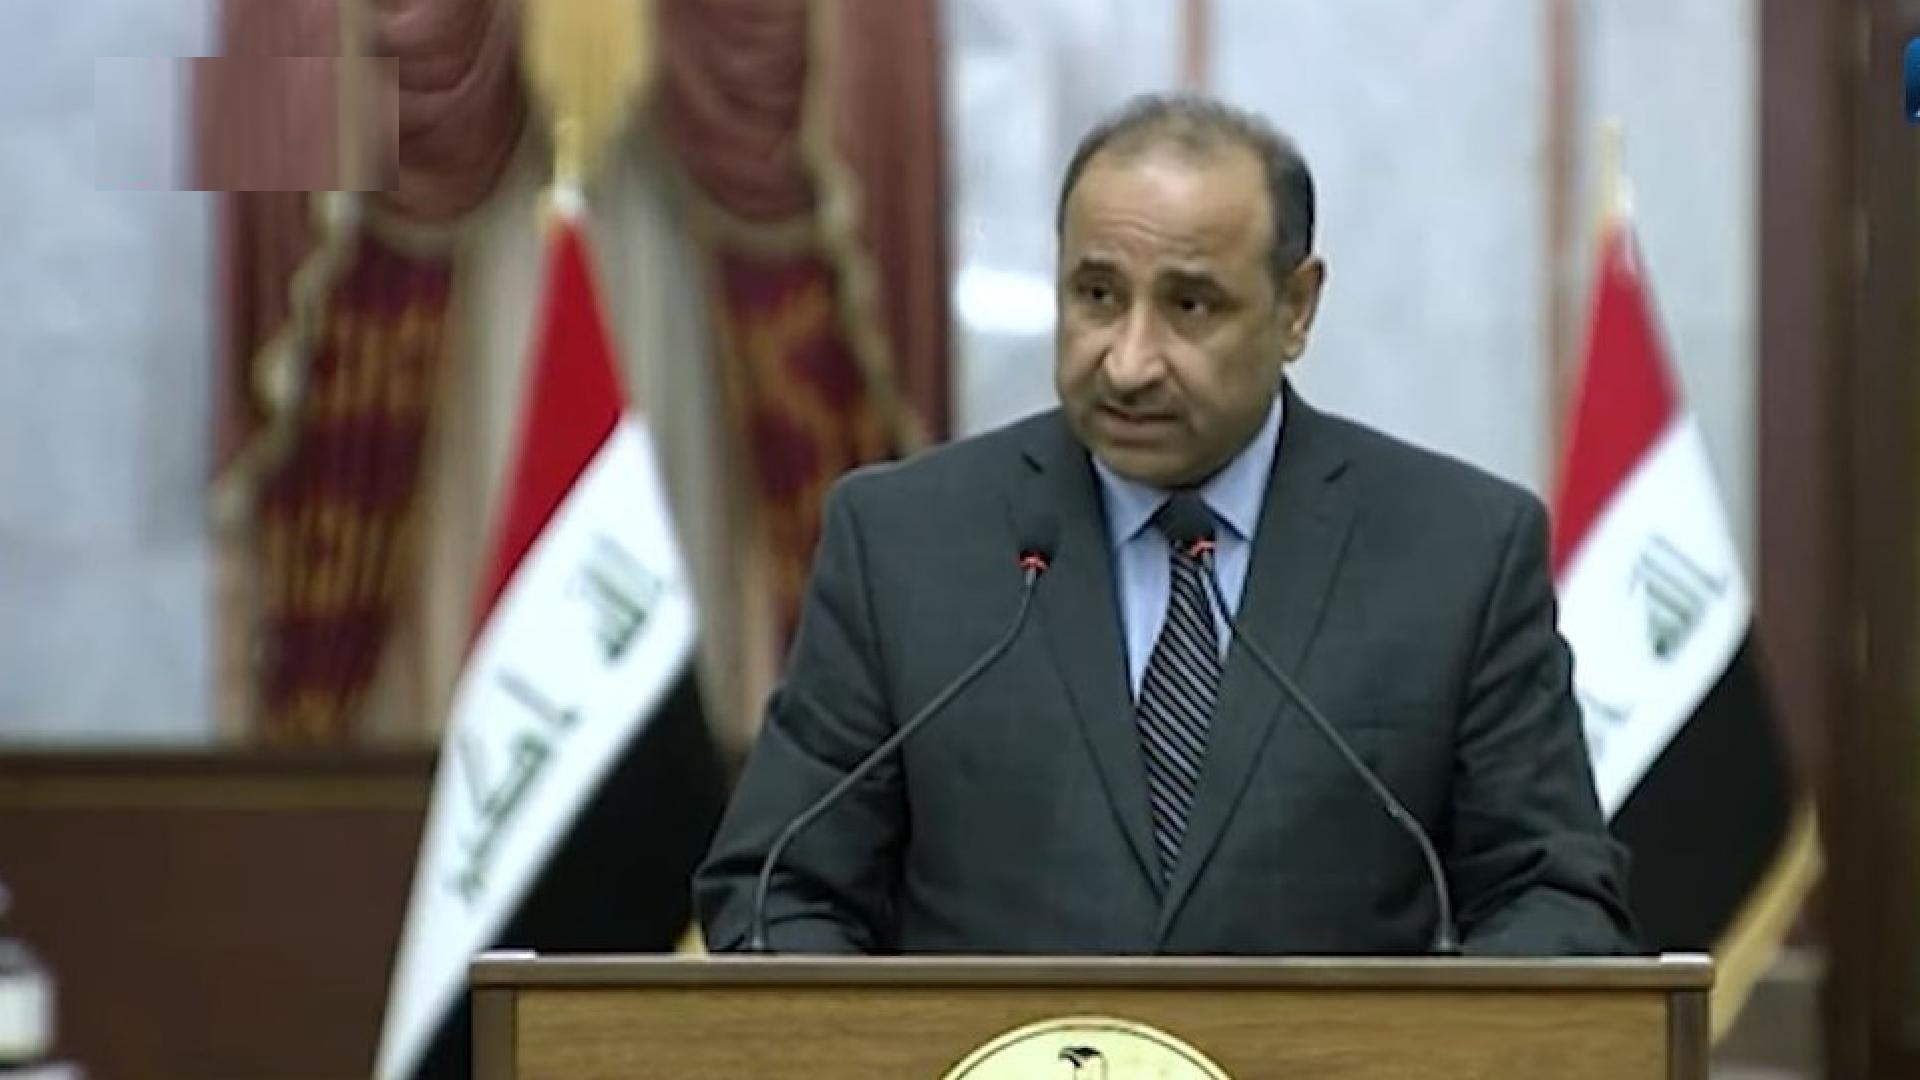 Iraq's Prime Minister to make regional visits, Official